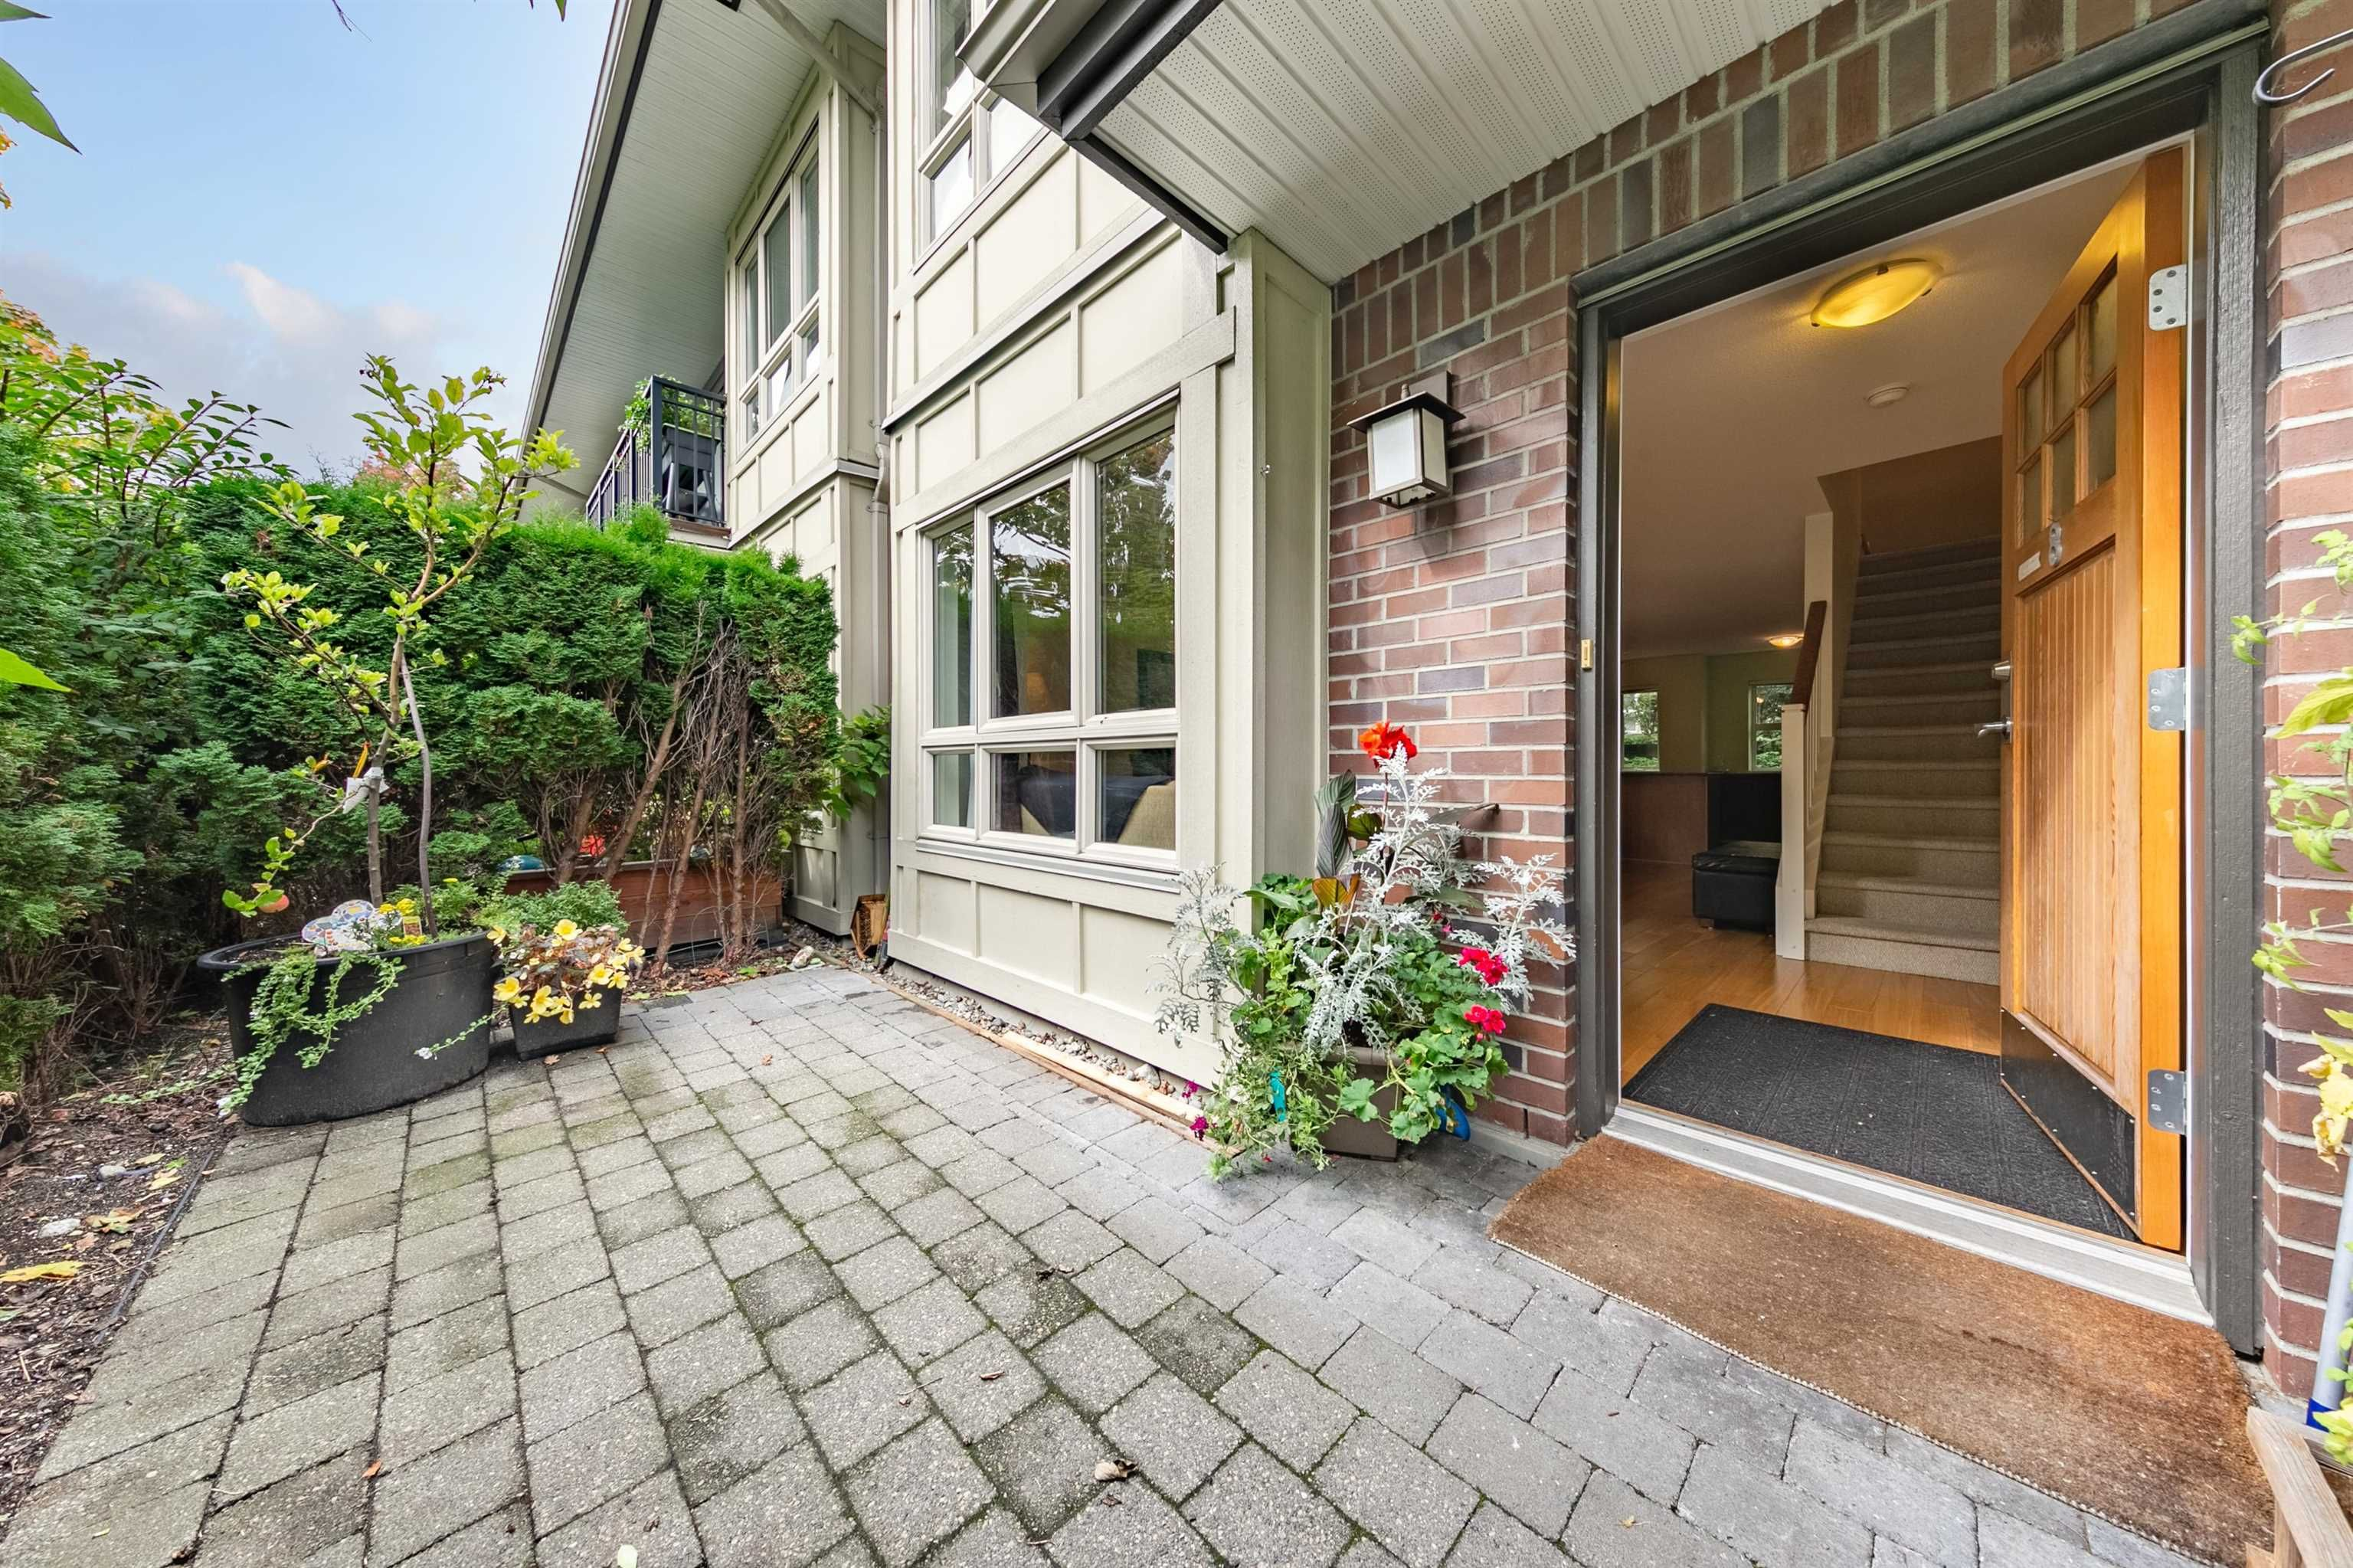 """Main Photo: 8 4055 PENDER Street in Burnaby: Willingdon Heights Townhouse for sale in """"Redbrick"""" (Burnaby North)  : MLS®# R2619973"""